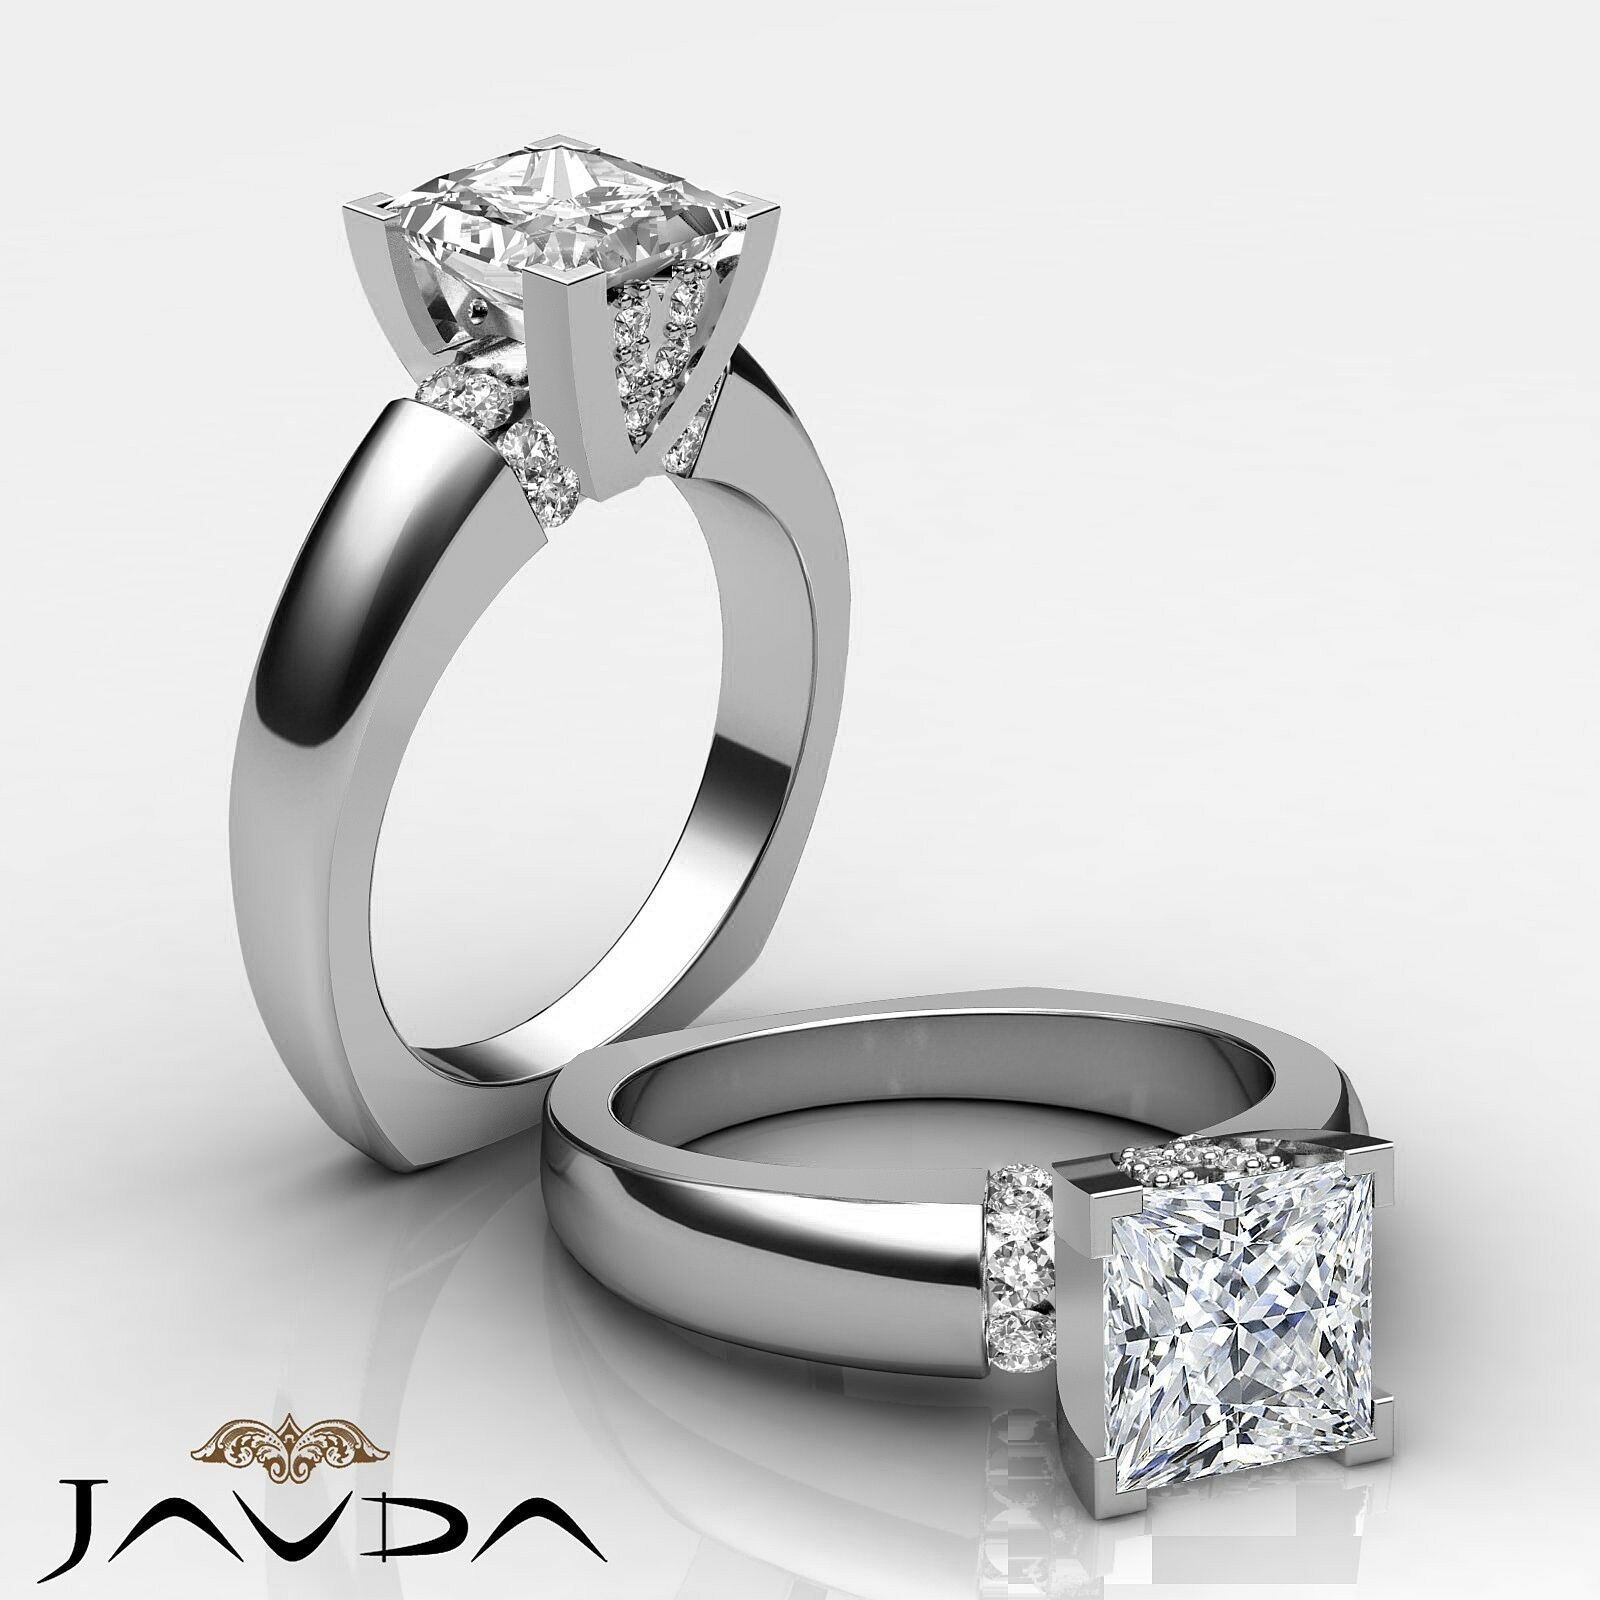 Princess Diamond Soltaire Engagement Ring GIA G color VS2 14k White gold 1.35 ct